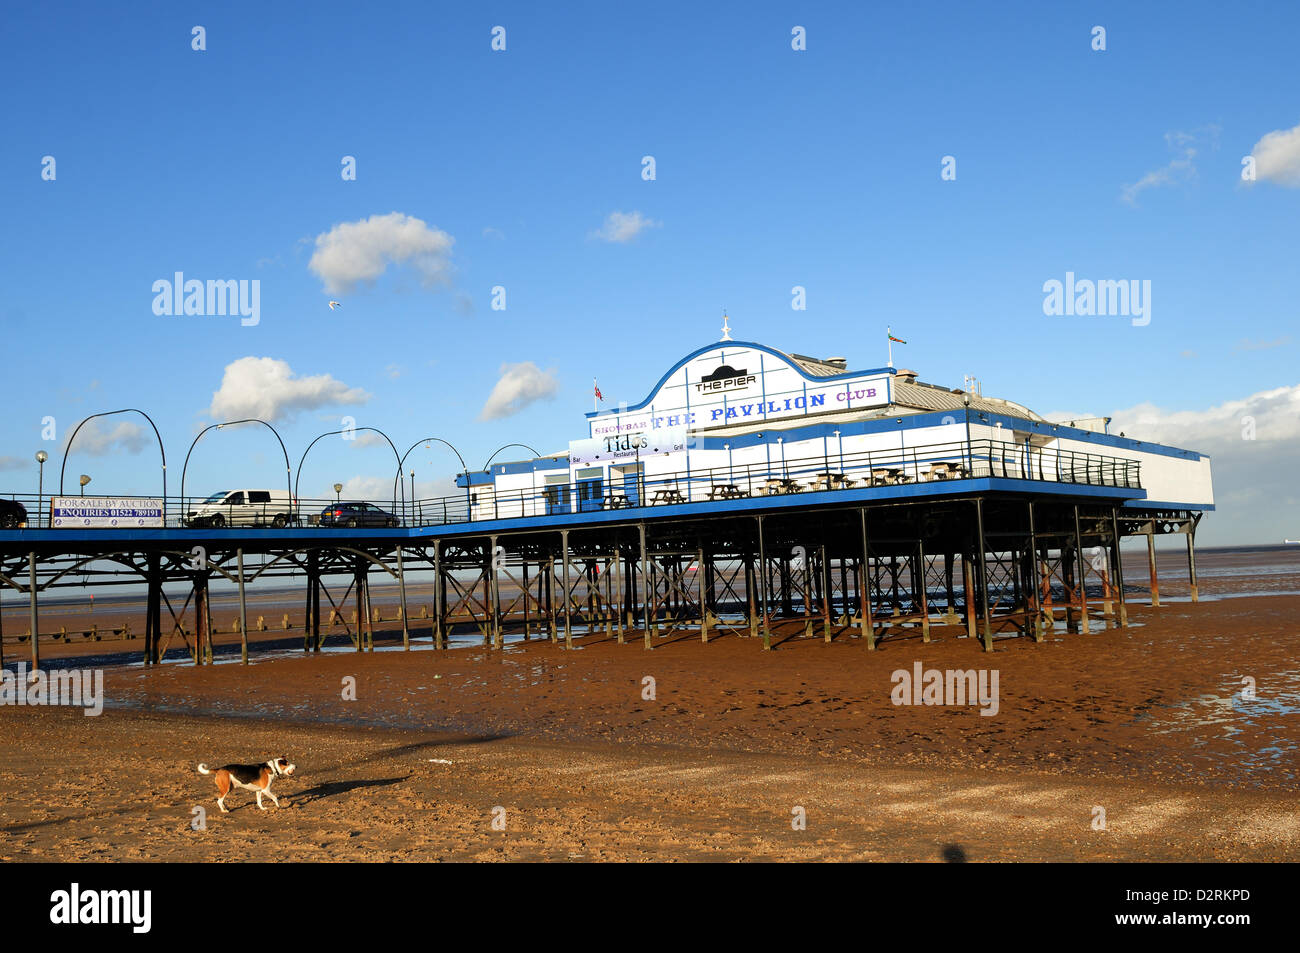 31st January 2013. Cleethorpes Pier, North East Lincolnshire, UK. The 335ft (102m) Pier opened in 1873 and is due Stock Photo